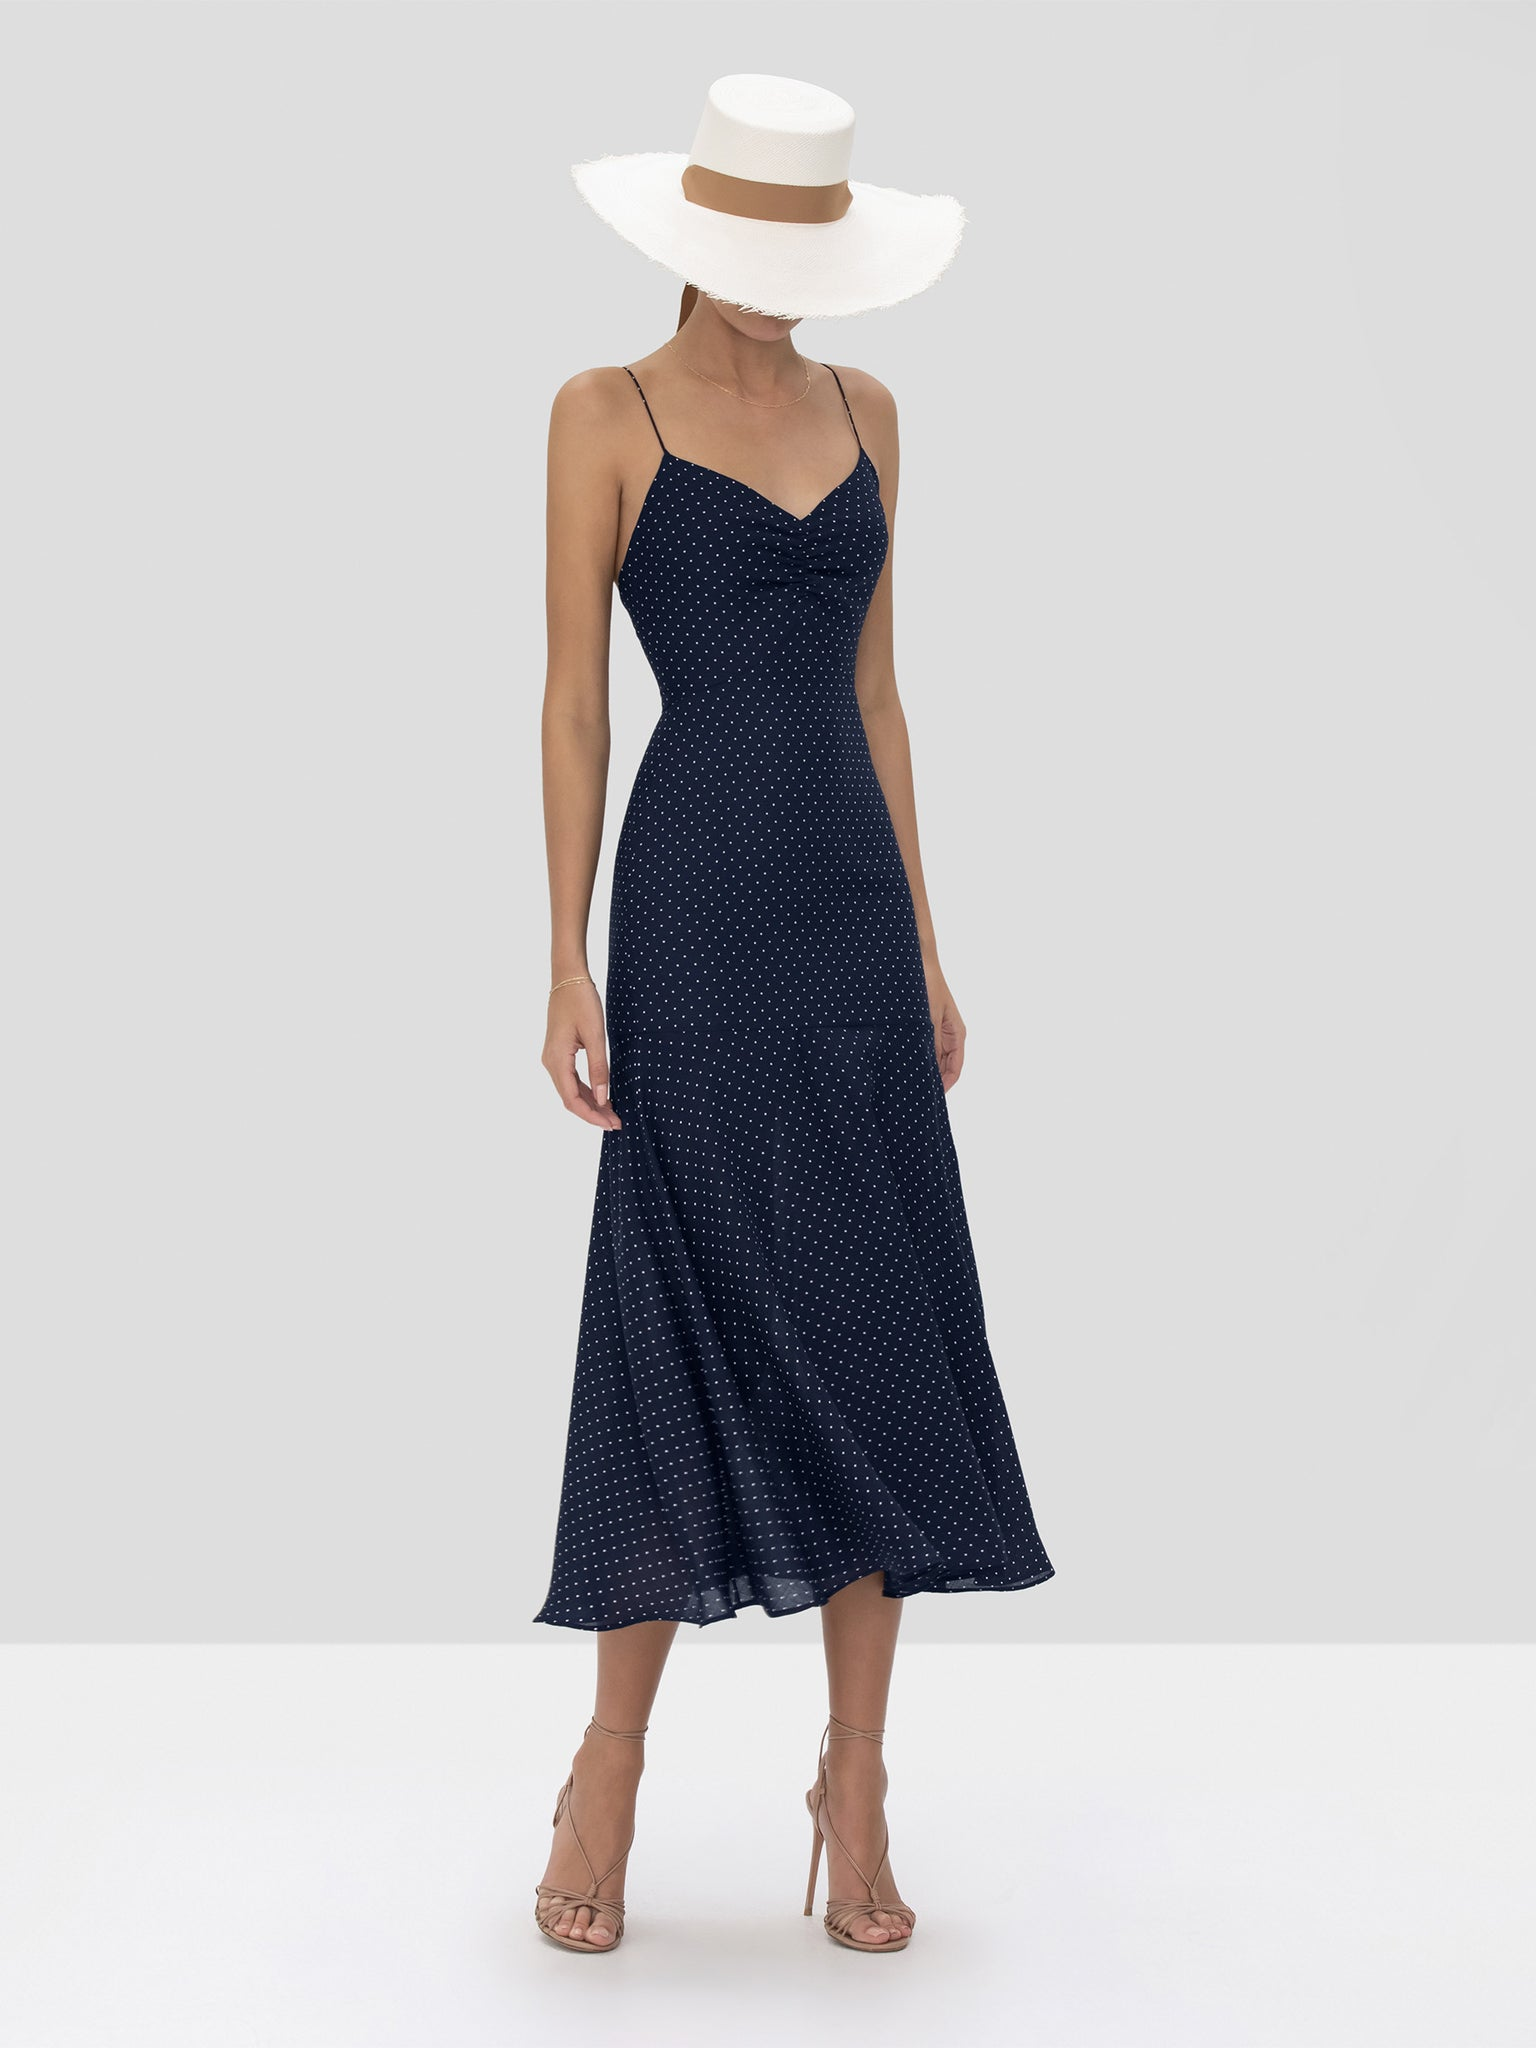 Alexis Nizarra Dress in Navy Dot Linen from the Spring Summer 2020 Collection